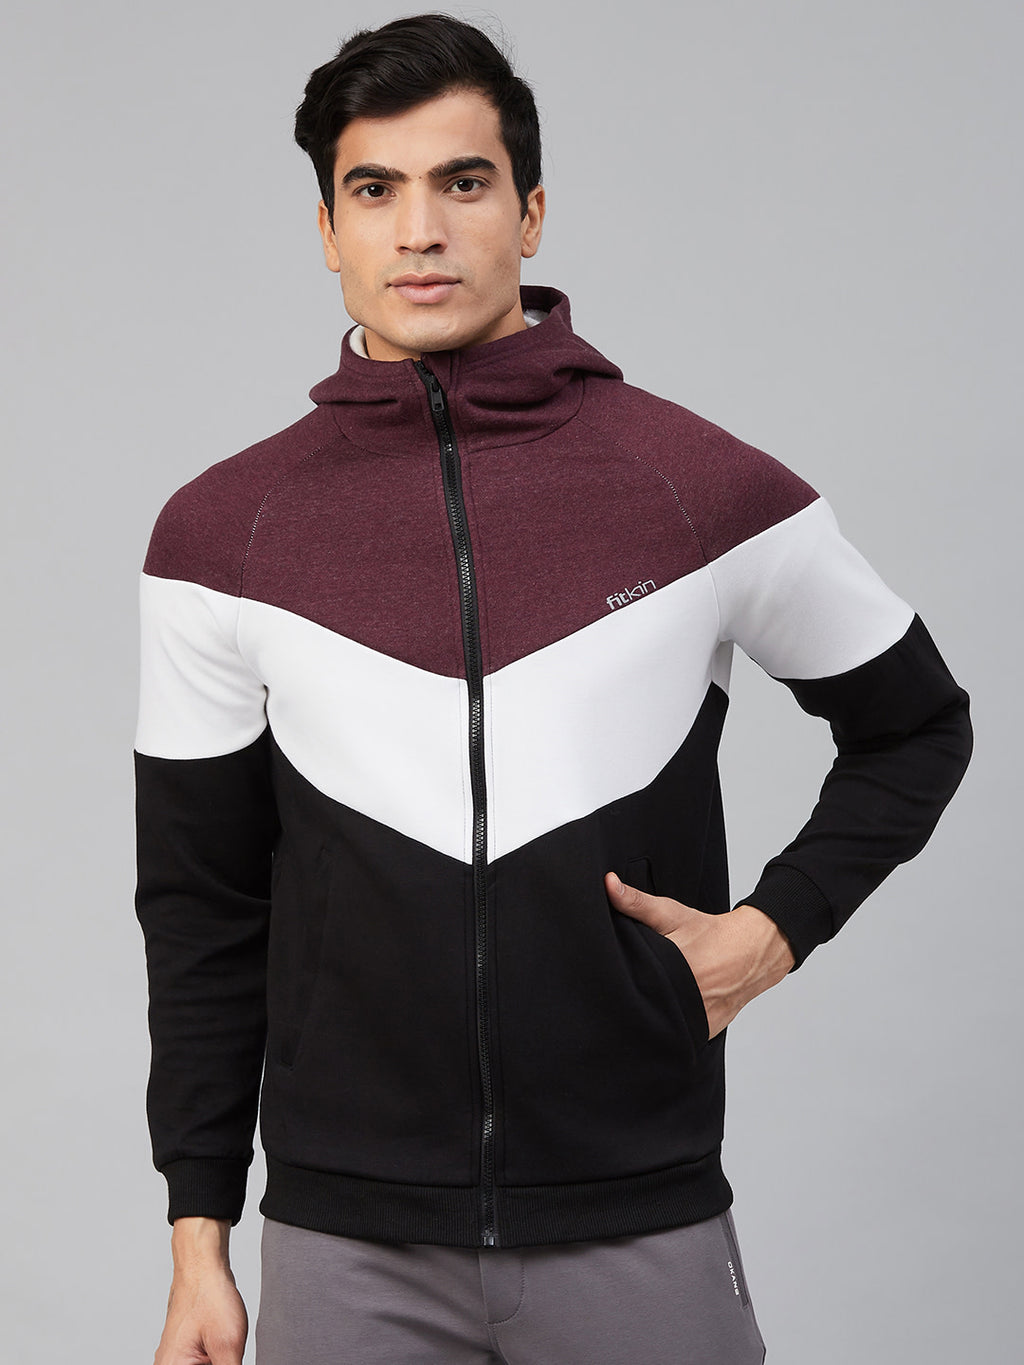 Fitkin Men Black & Burgundy Color blocked Hooded Gym Sweatshirt